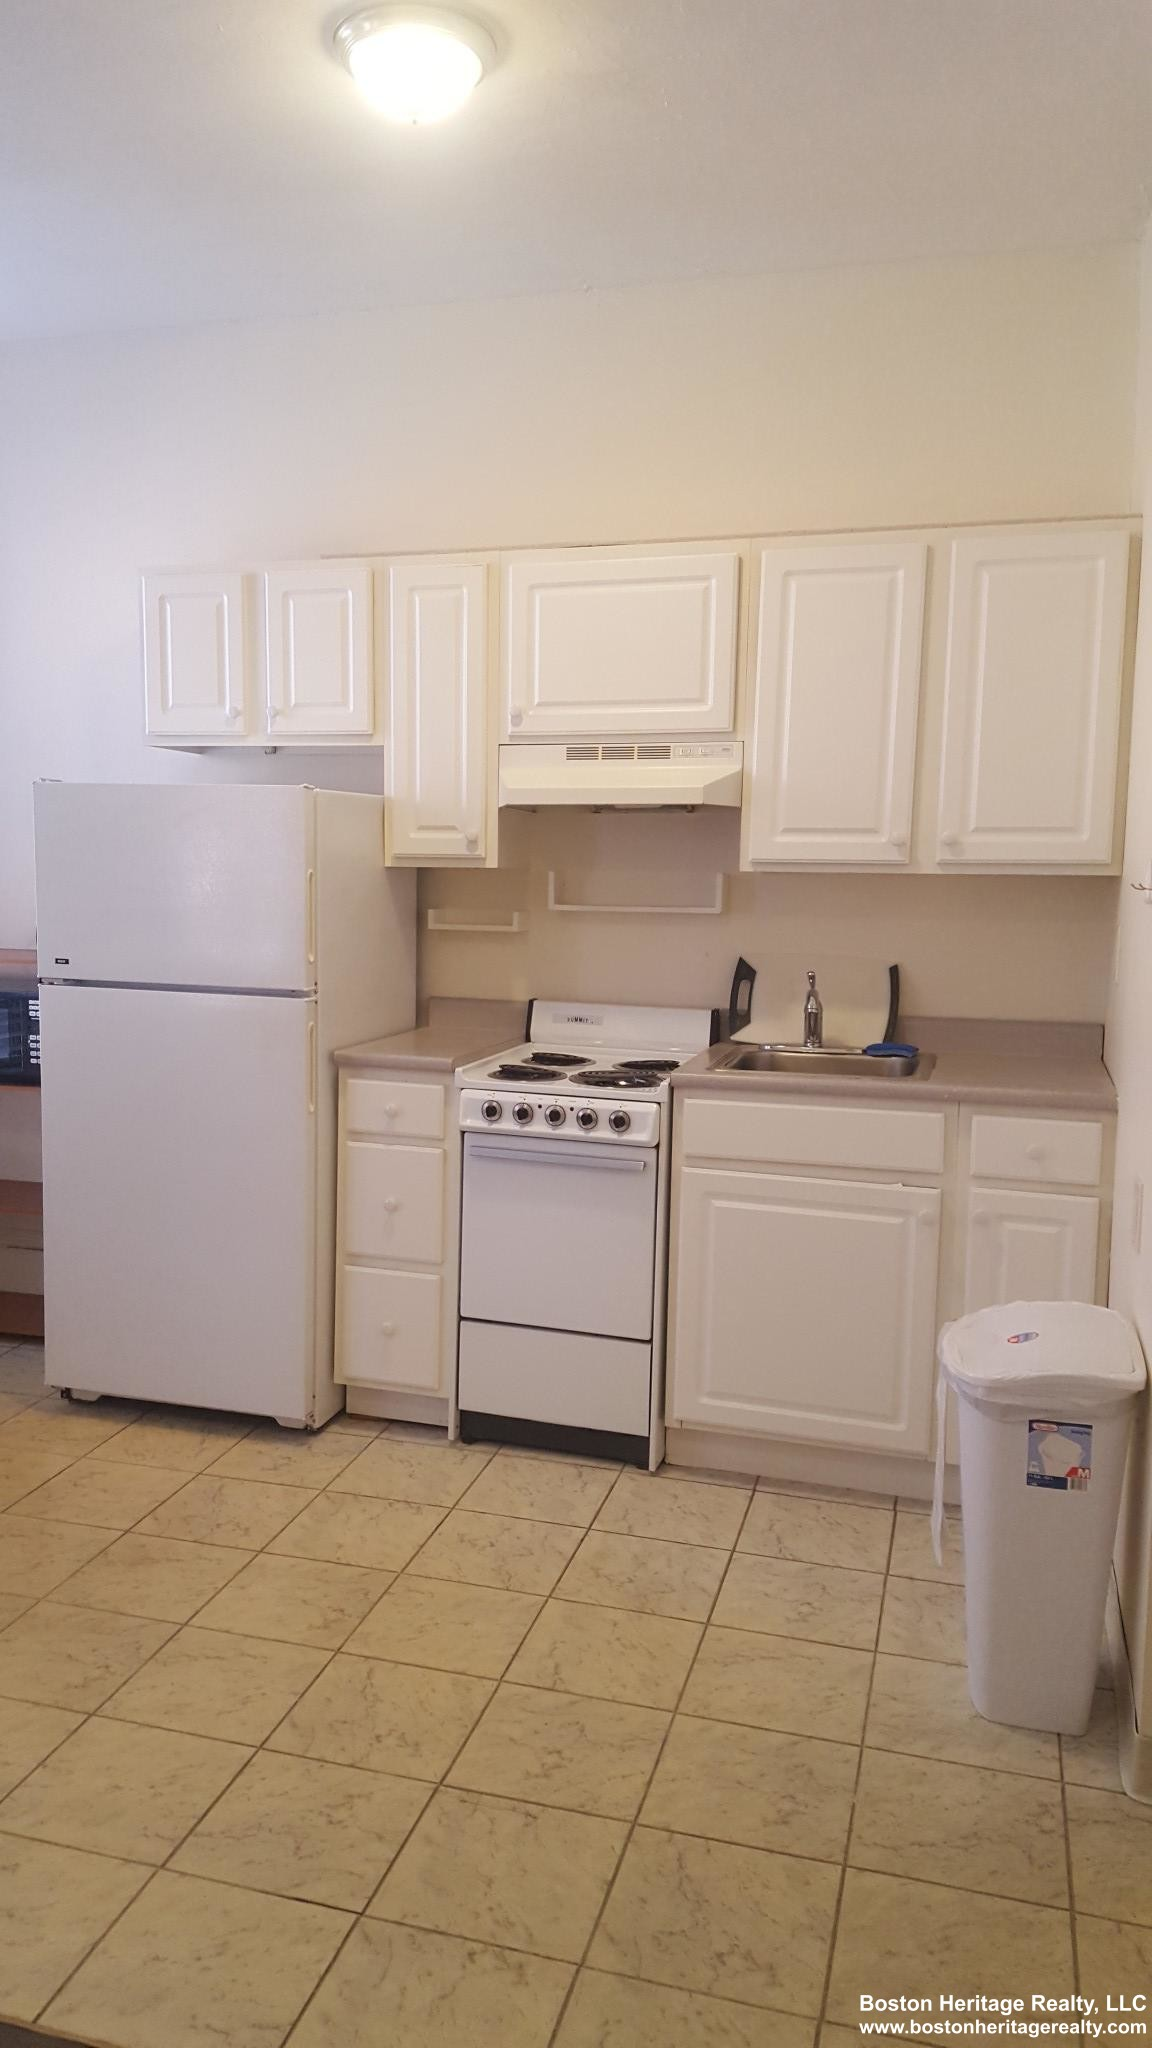 Studio, 1 Bath apartment in Boston, Fenway for $1,750